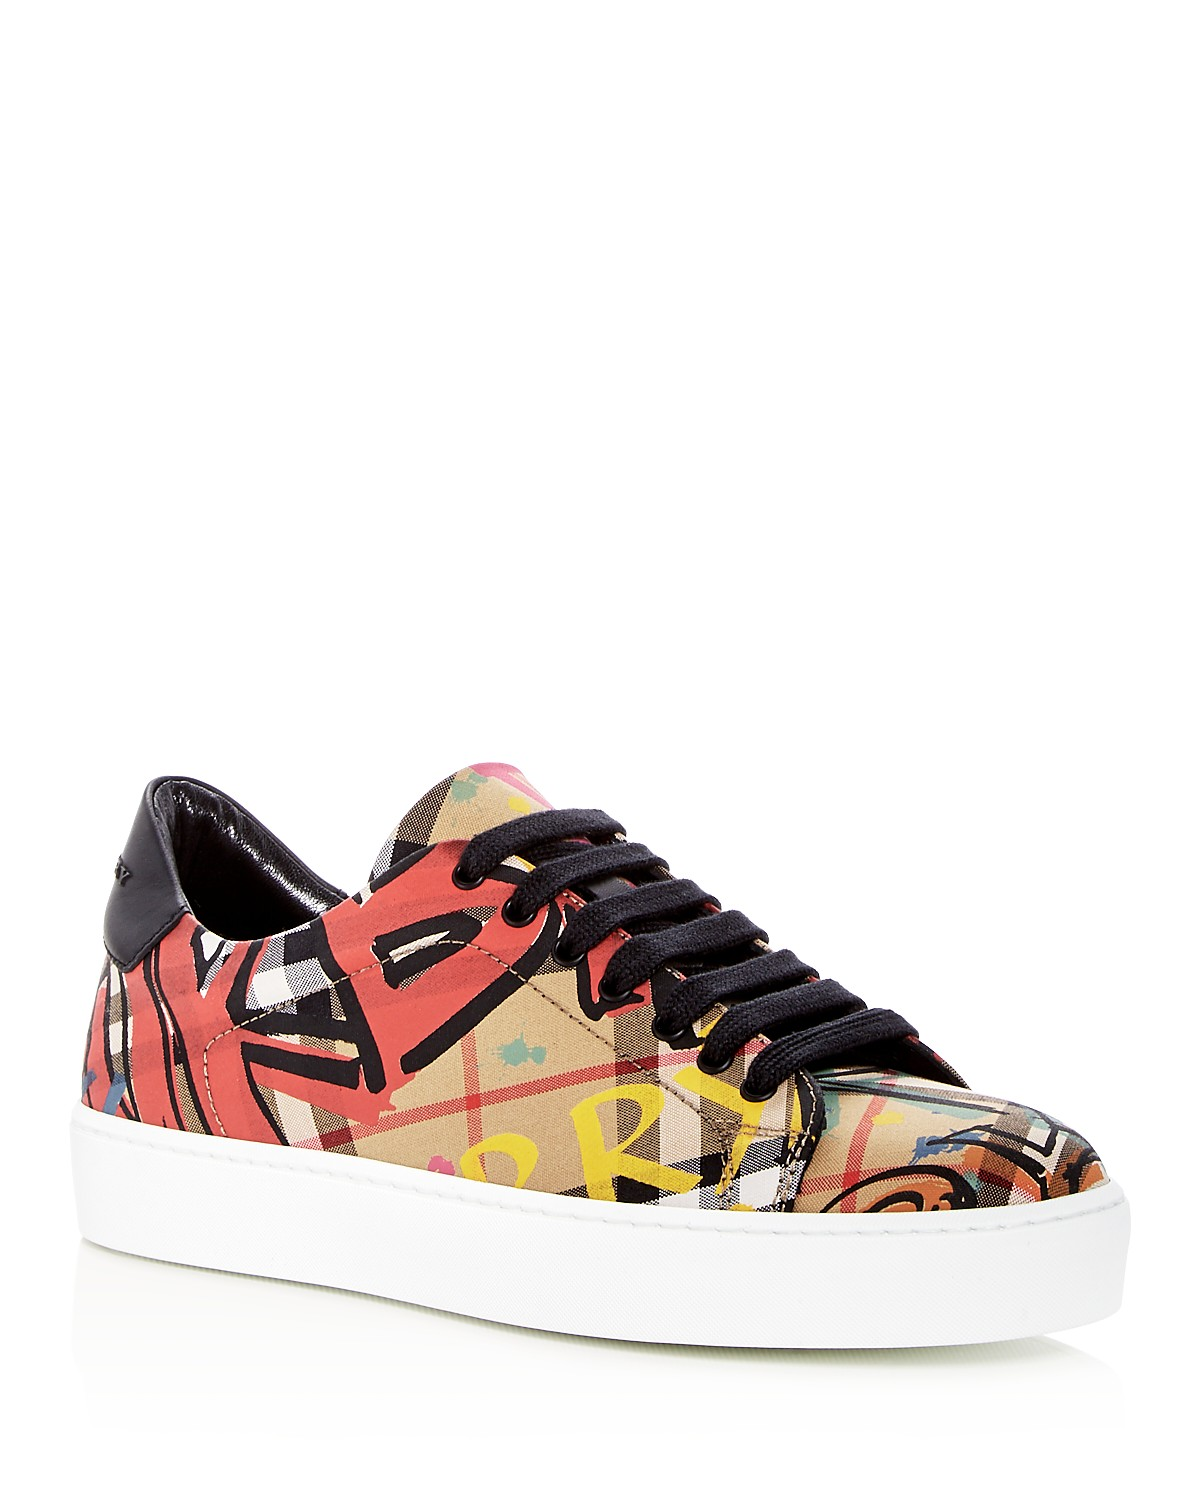 graffiti sneakers Burberry Buy Cheap Geniue Stockist Sale Geniue Stockist Looking For Cheap Price Outlet Fashionable QfX6j